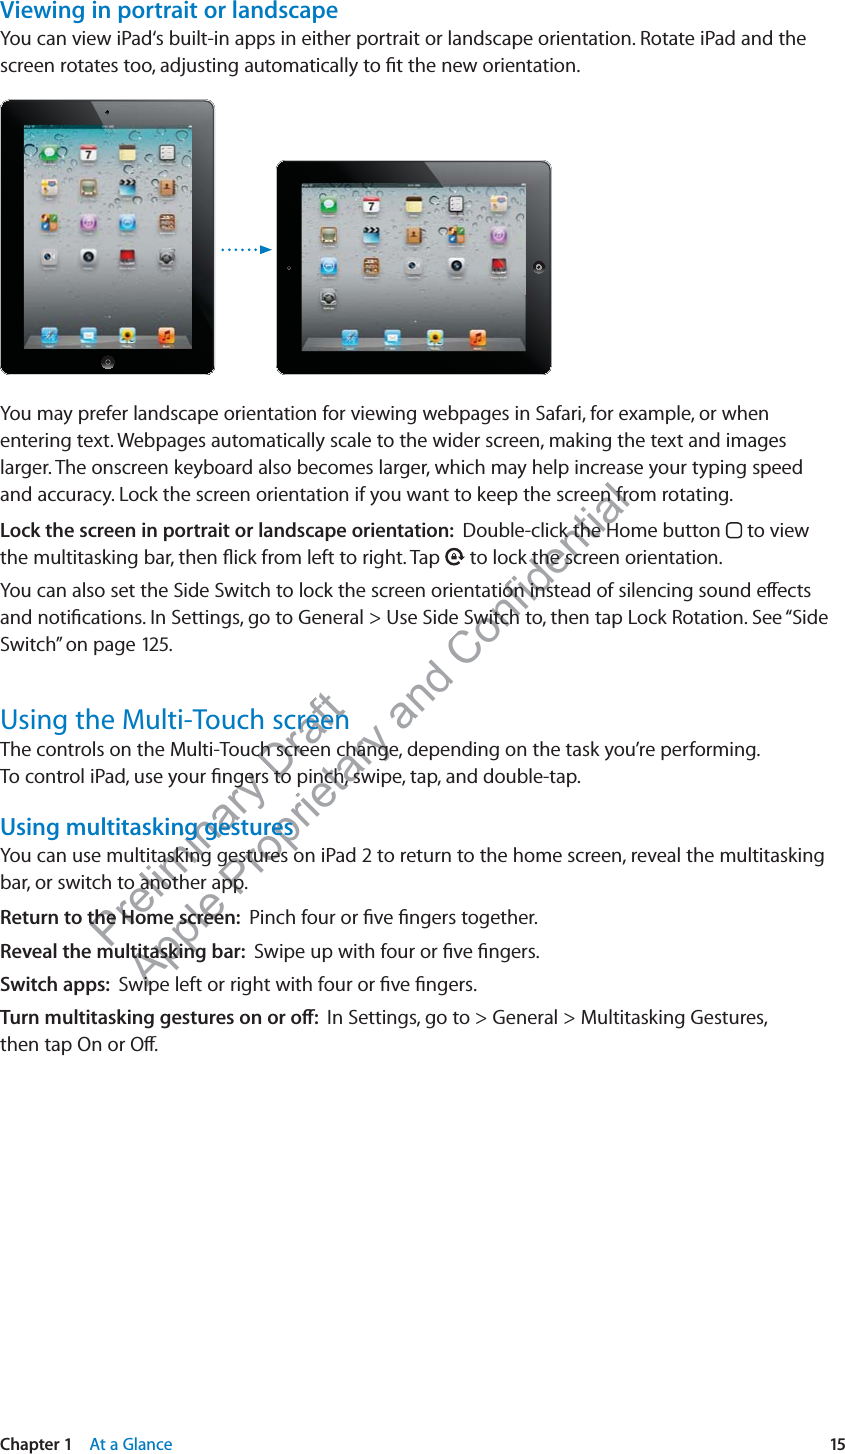 apple manual ipad 1 rh apple manual ipad 1 tempower us iPad II Features Printable iPad User Guide